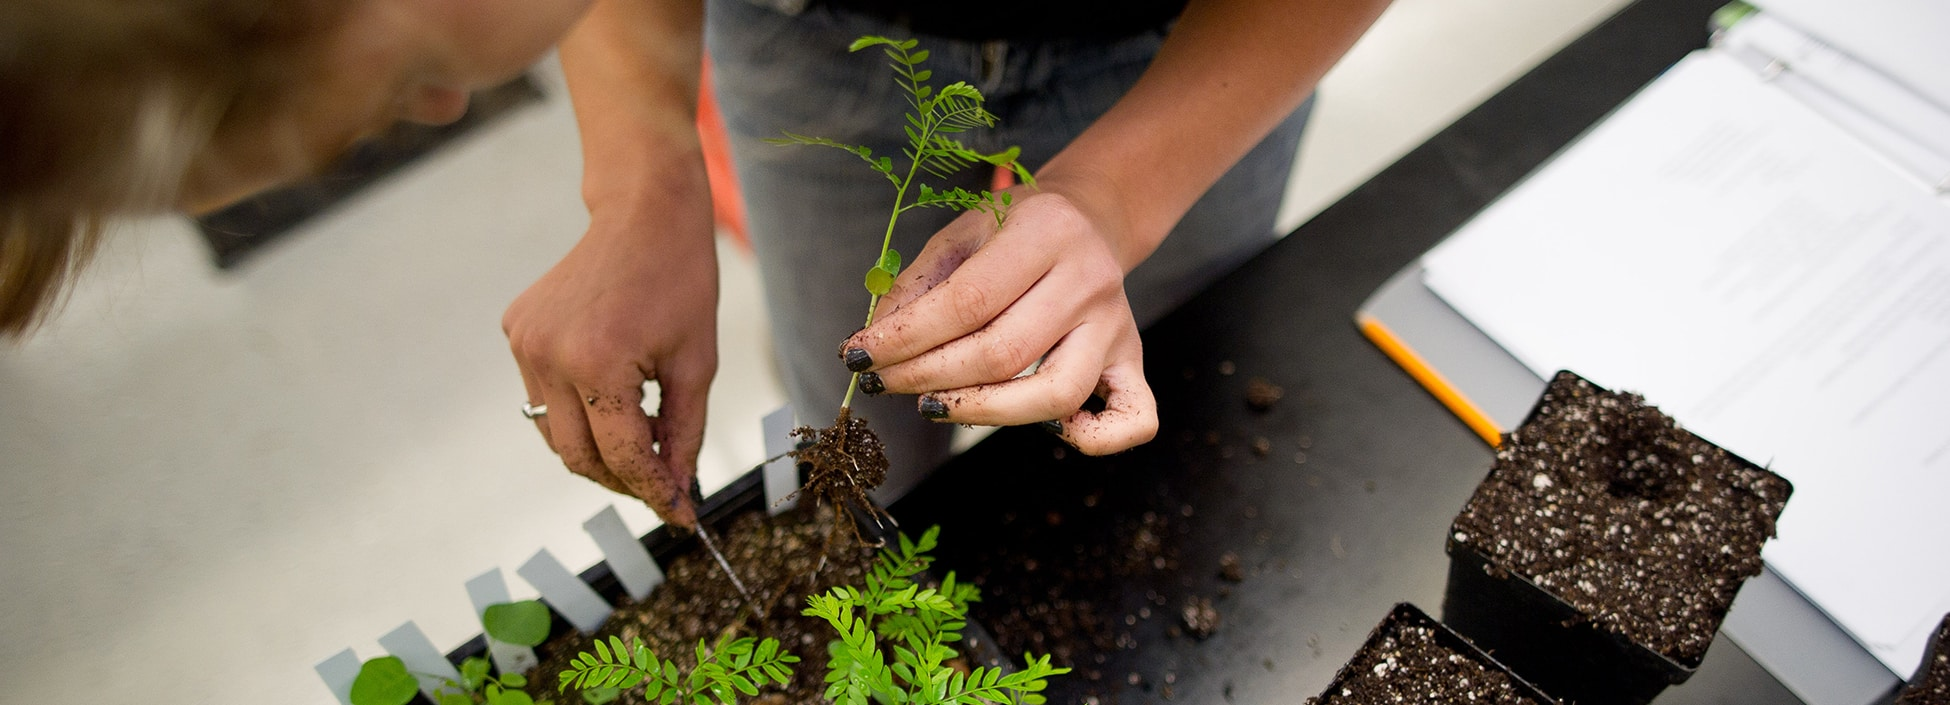 student planting, plants, agriculture